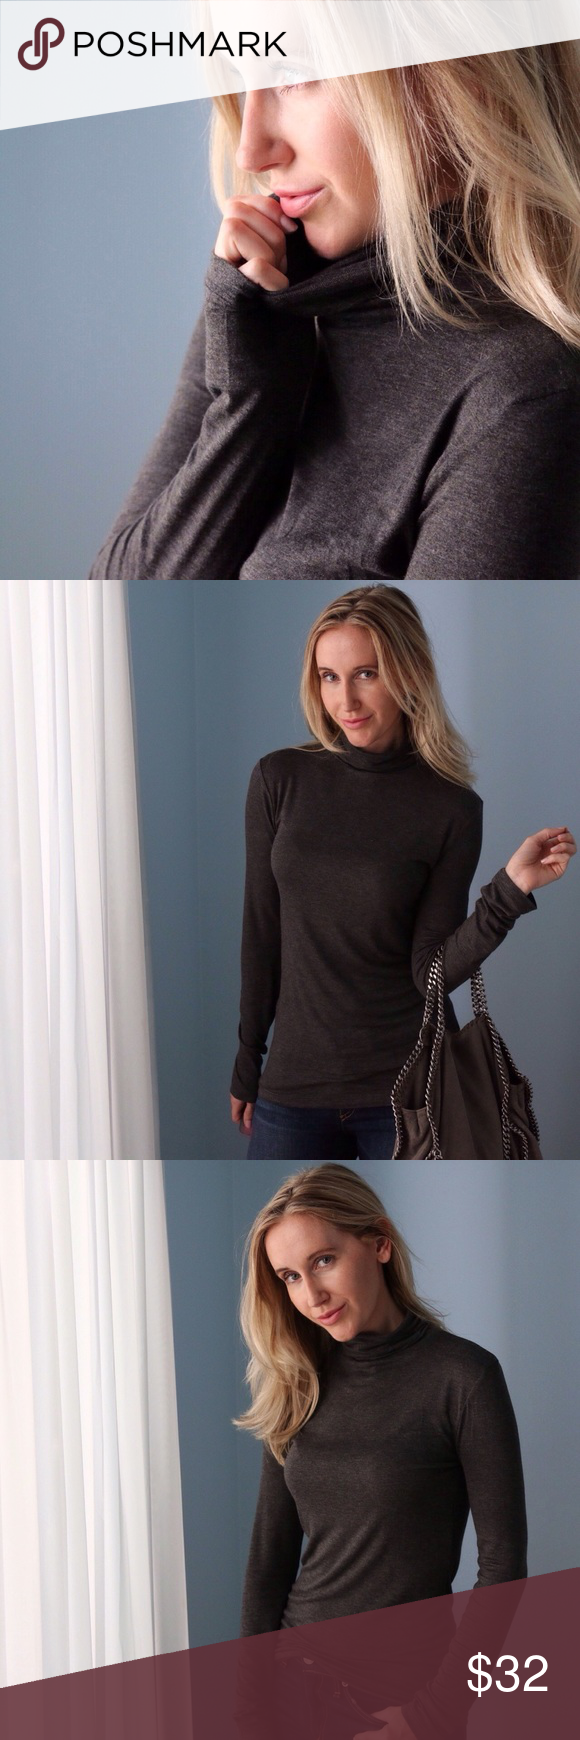 🆕Gramercy Turtleneck | Charcoal ◽️The Gramercy Turtleneck is my personal #1 basic in the Fall/Winter. Being from NY, I live in turtlenecks 6 months of the year. This top is simple and incredibly soft, perfect fit - not too loose or tight, nice stretch, great length. Classic charcoal color. Goes with everything and also perfect for layering. 95% rayon/5% spandex. Nonsheer. New without tag. Also for sale in Navy.  ▫️Sizes available: S | M | L ▫️I am modeling size S ▫️Price is firm 📷 Photos…